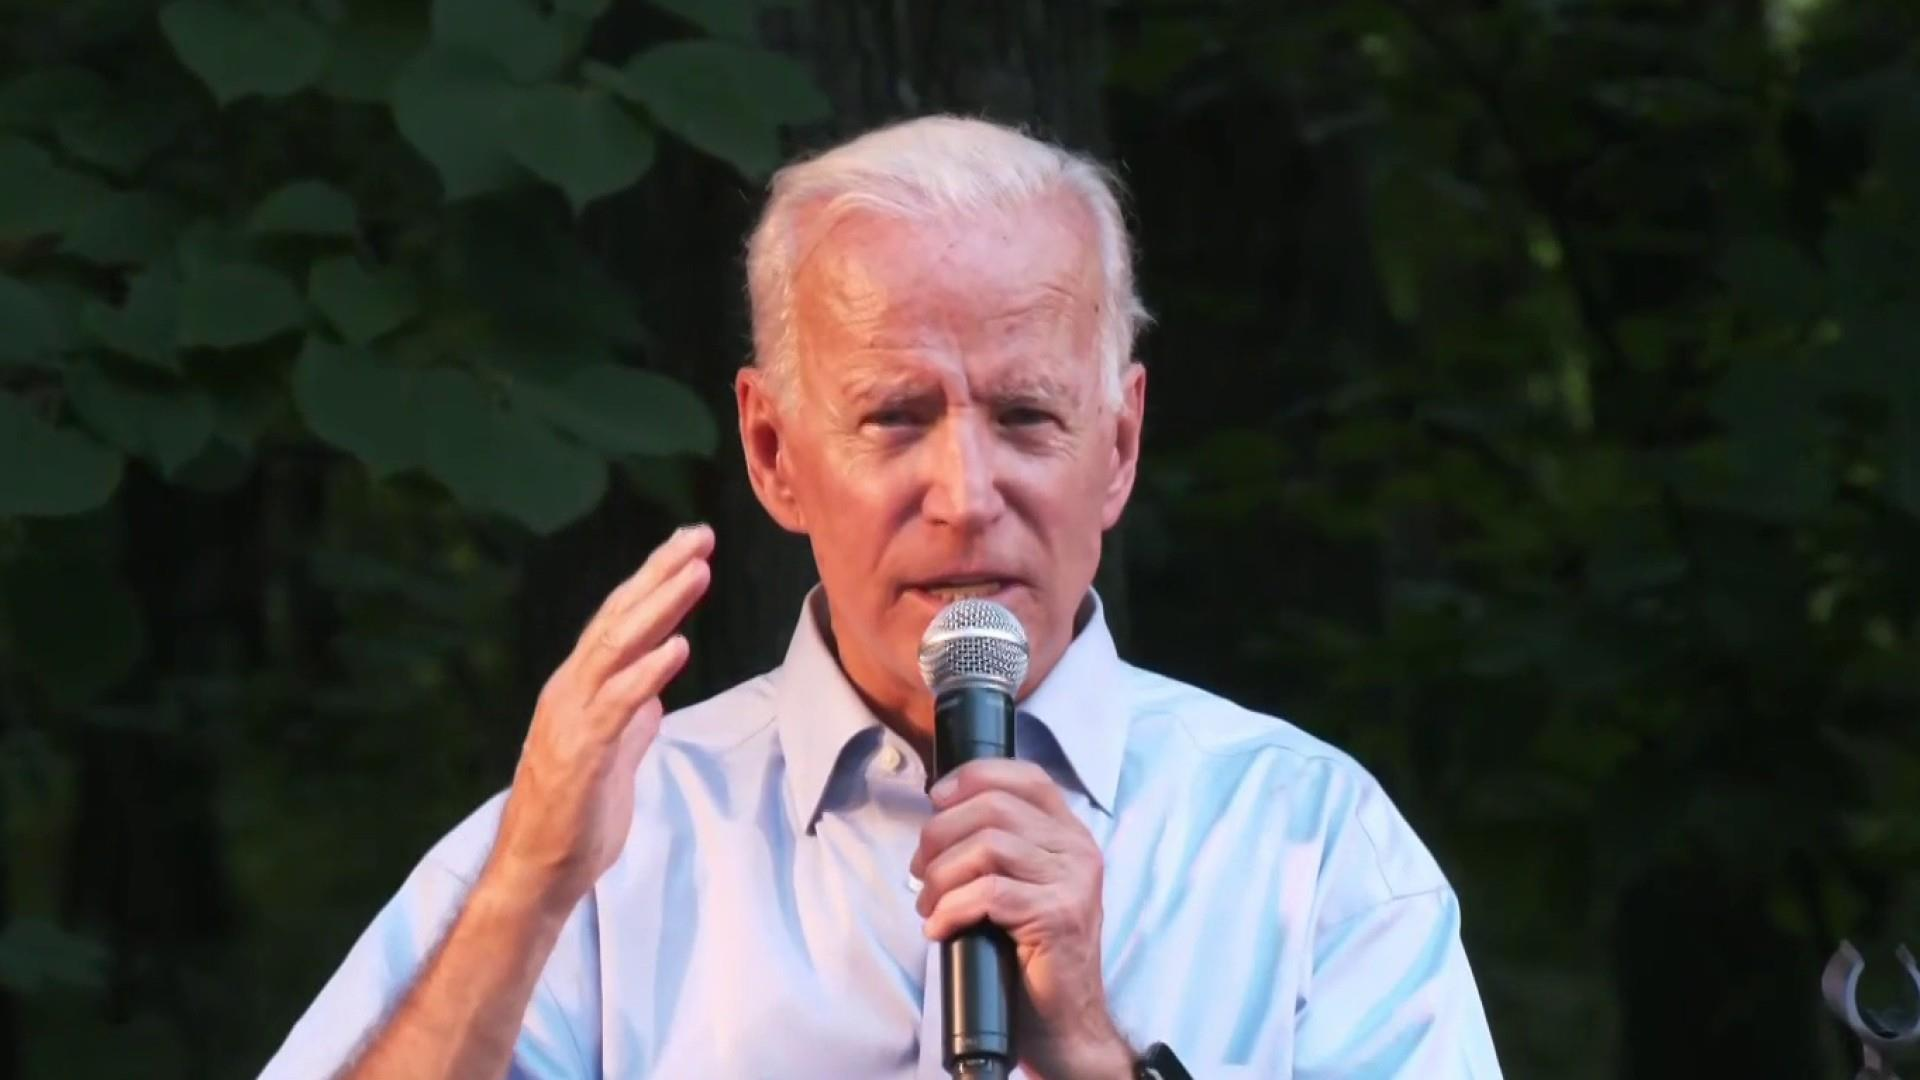 Big Question: How much does Biden benefit by not sharing the stage with the party's left flank?